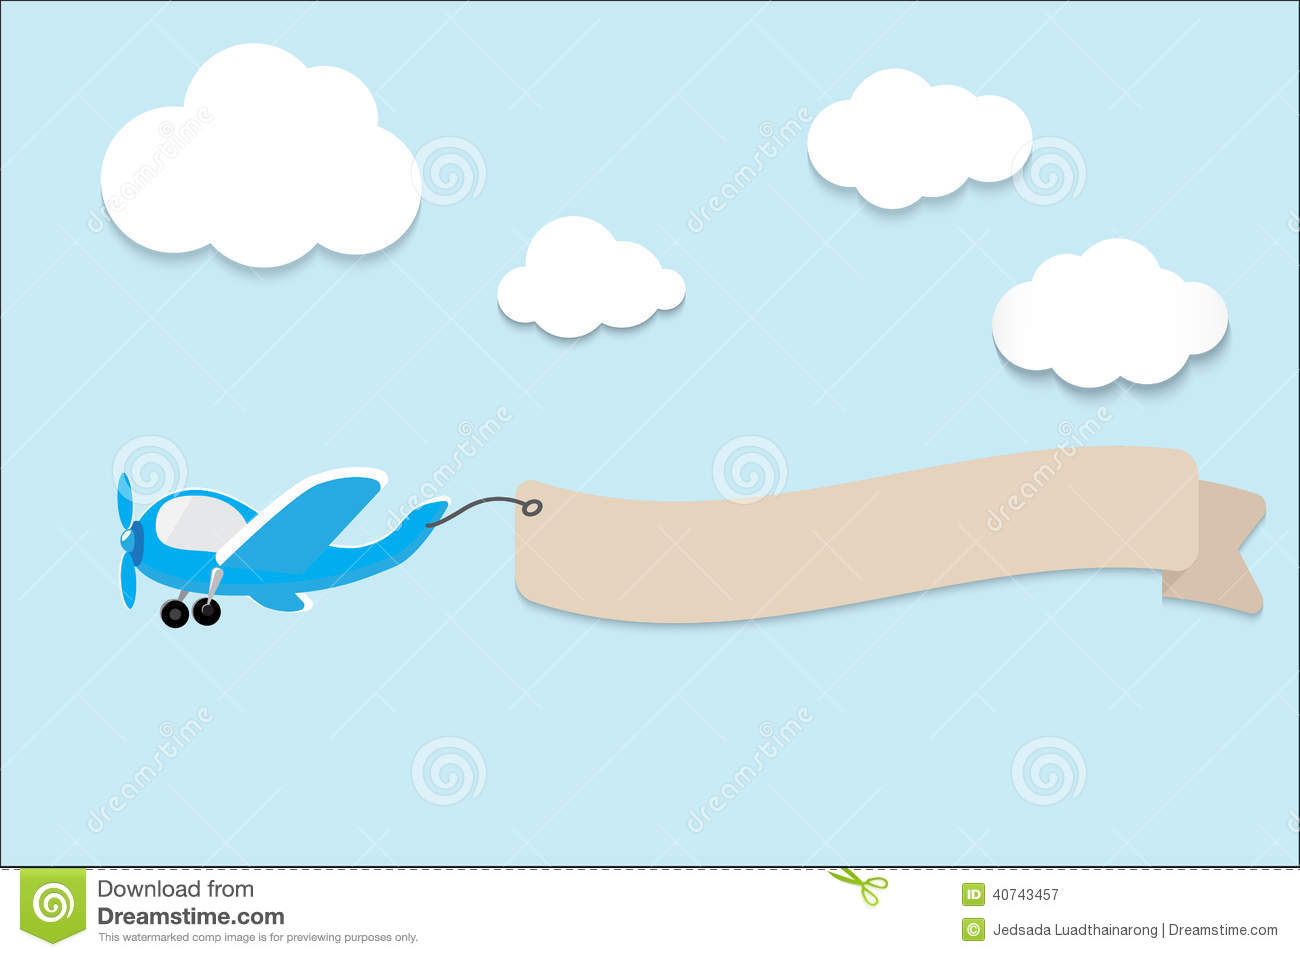 Airplane With A Banner. Vector Illustration. Stock Vector - Image ...